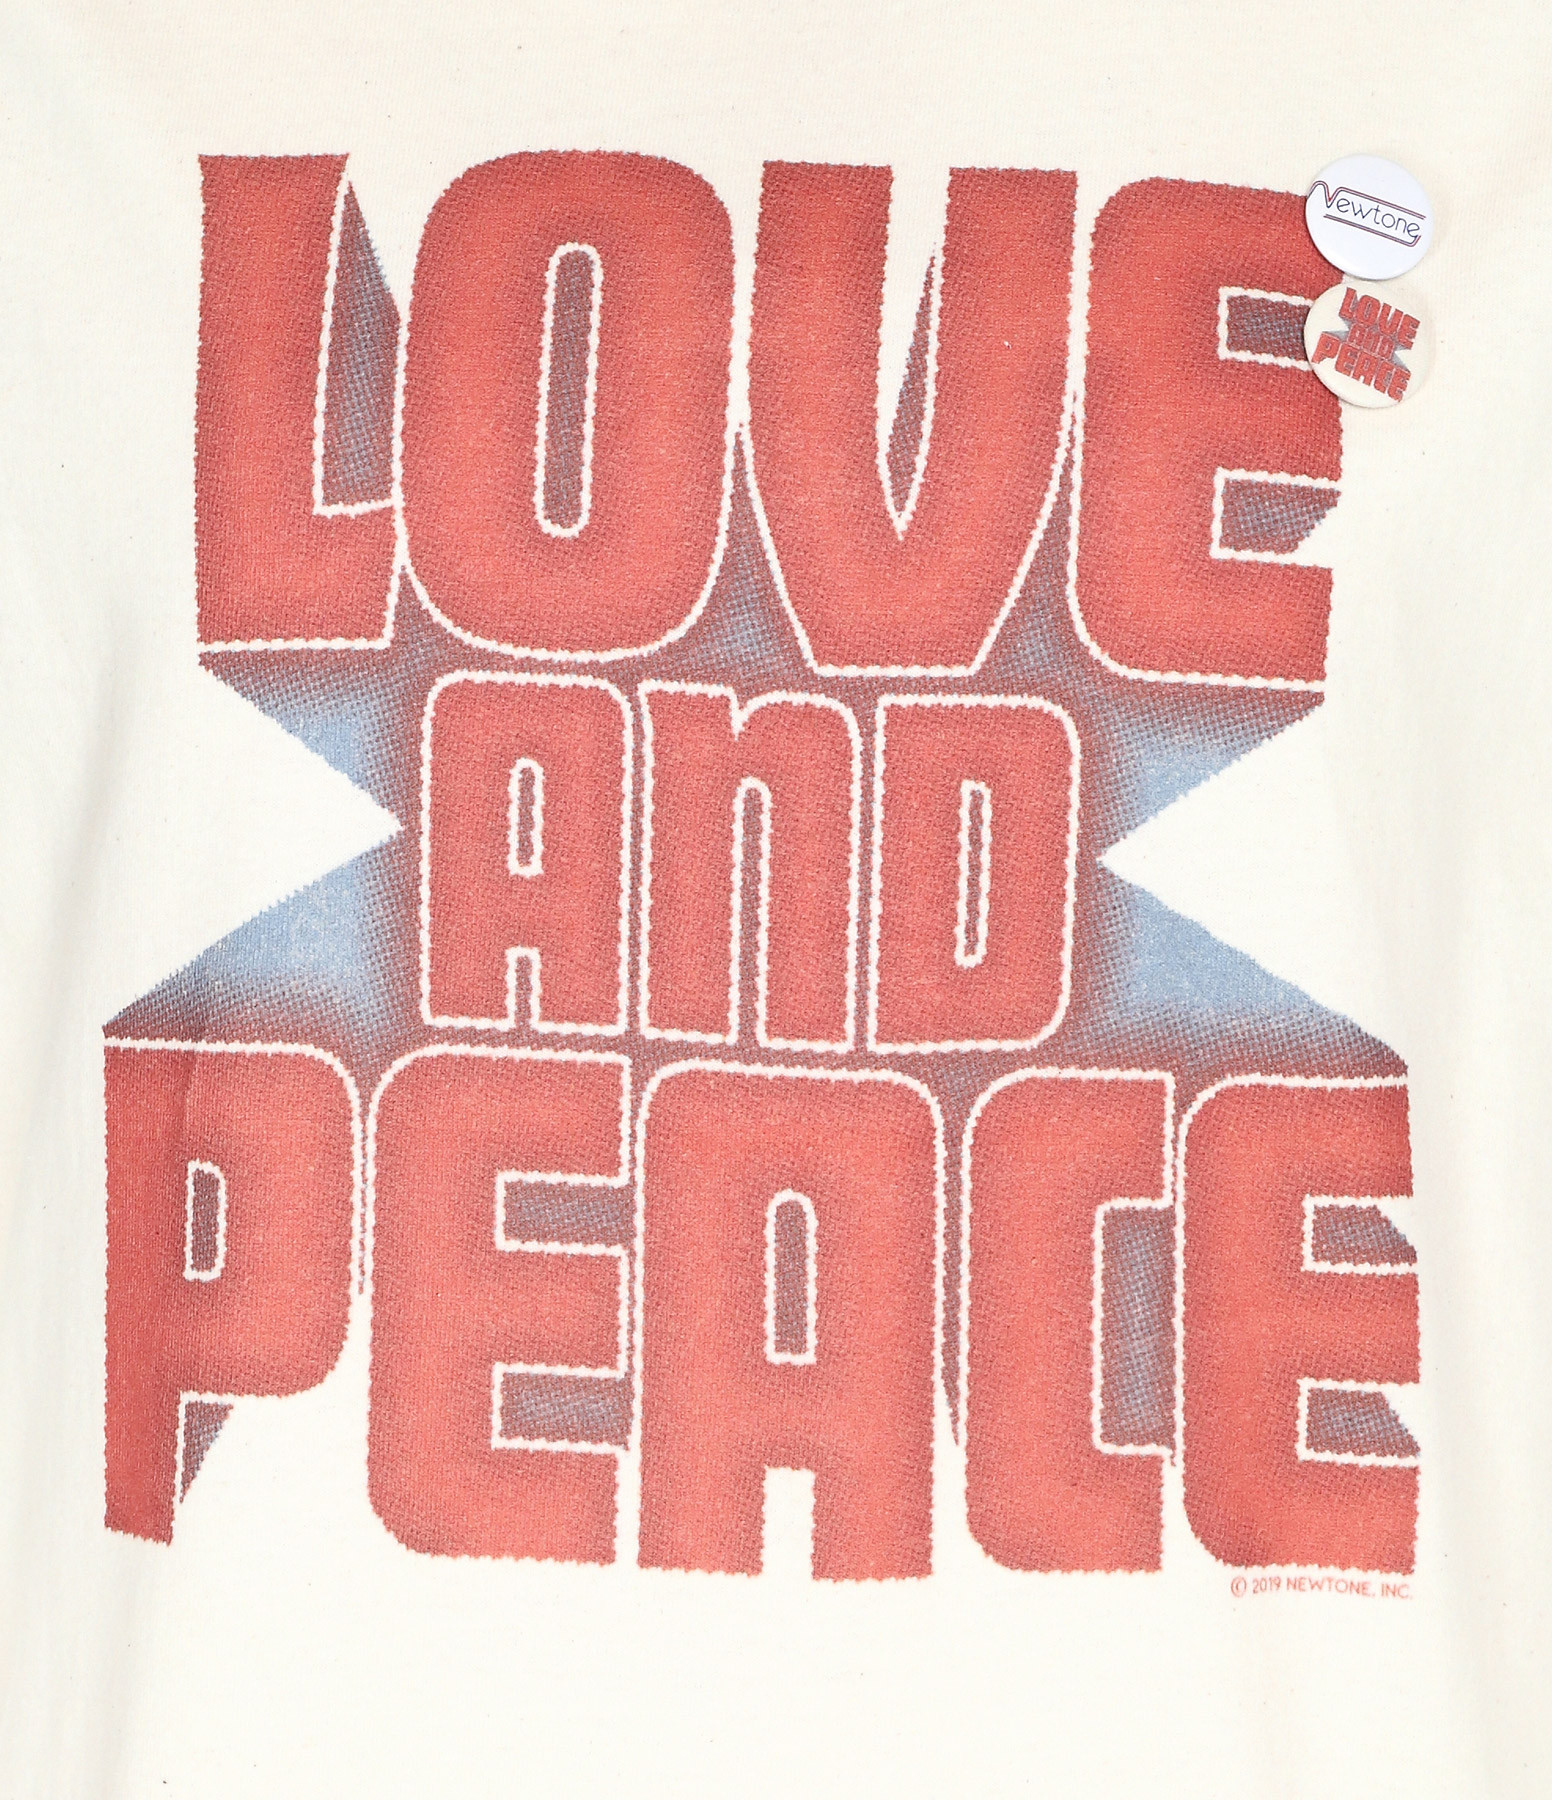 NEWTONE - Tee-shirt Peace and Love Coton Naturel